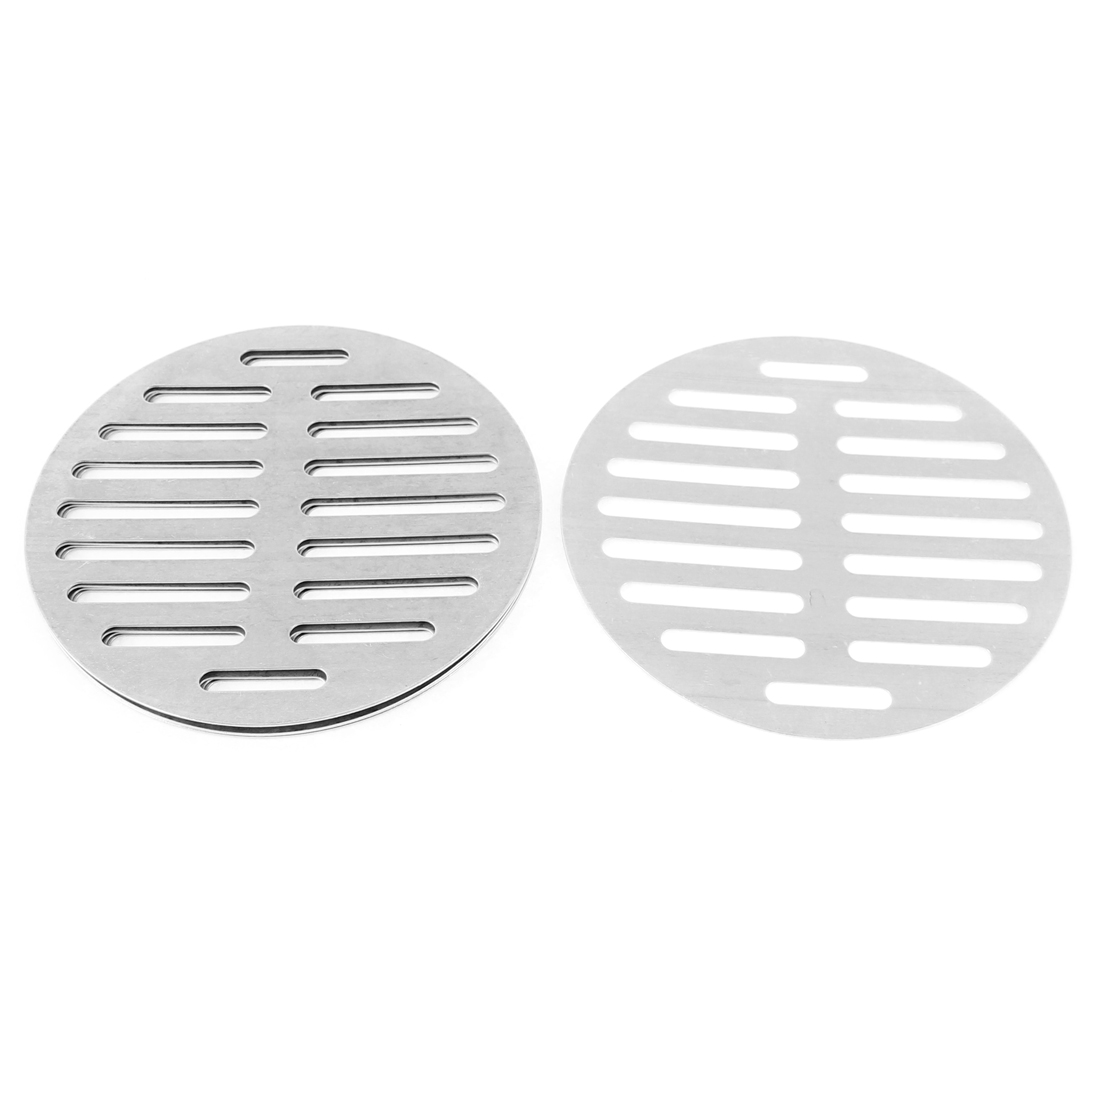 "Stainless Steel Kitchen Bathroom Round Floor Drain Cover 6"" 15cm 5Pcs"